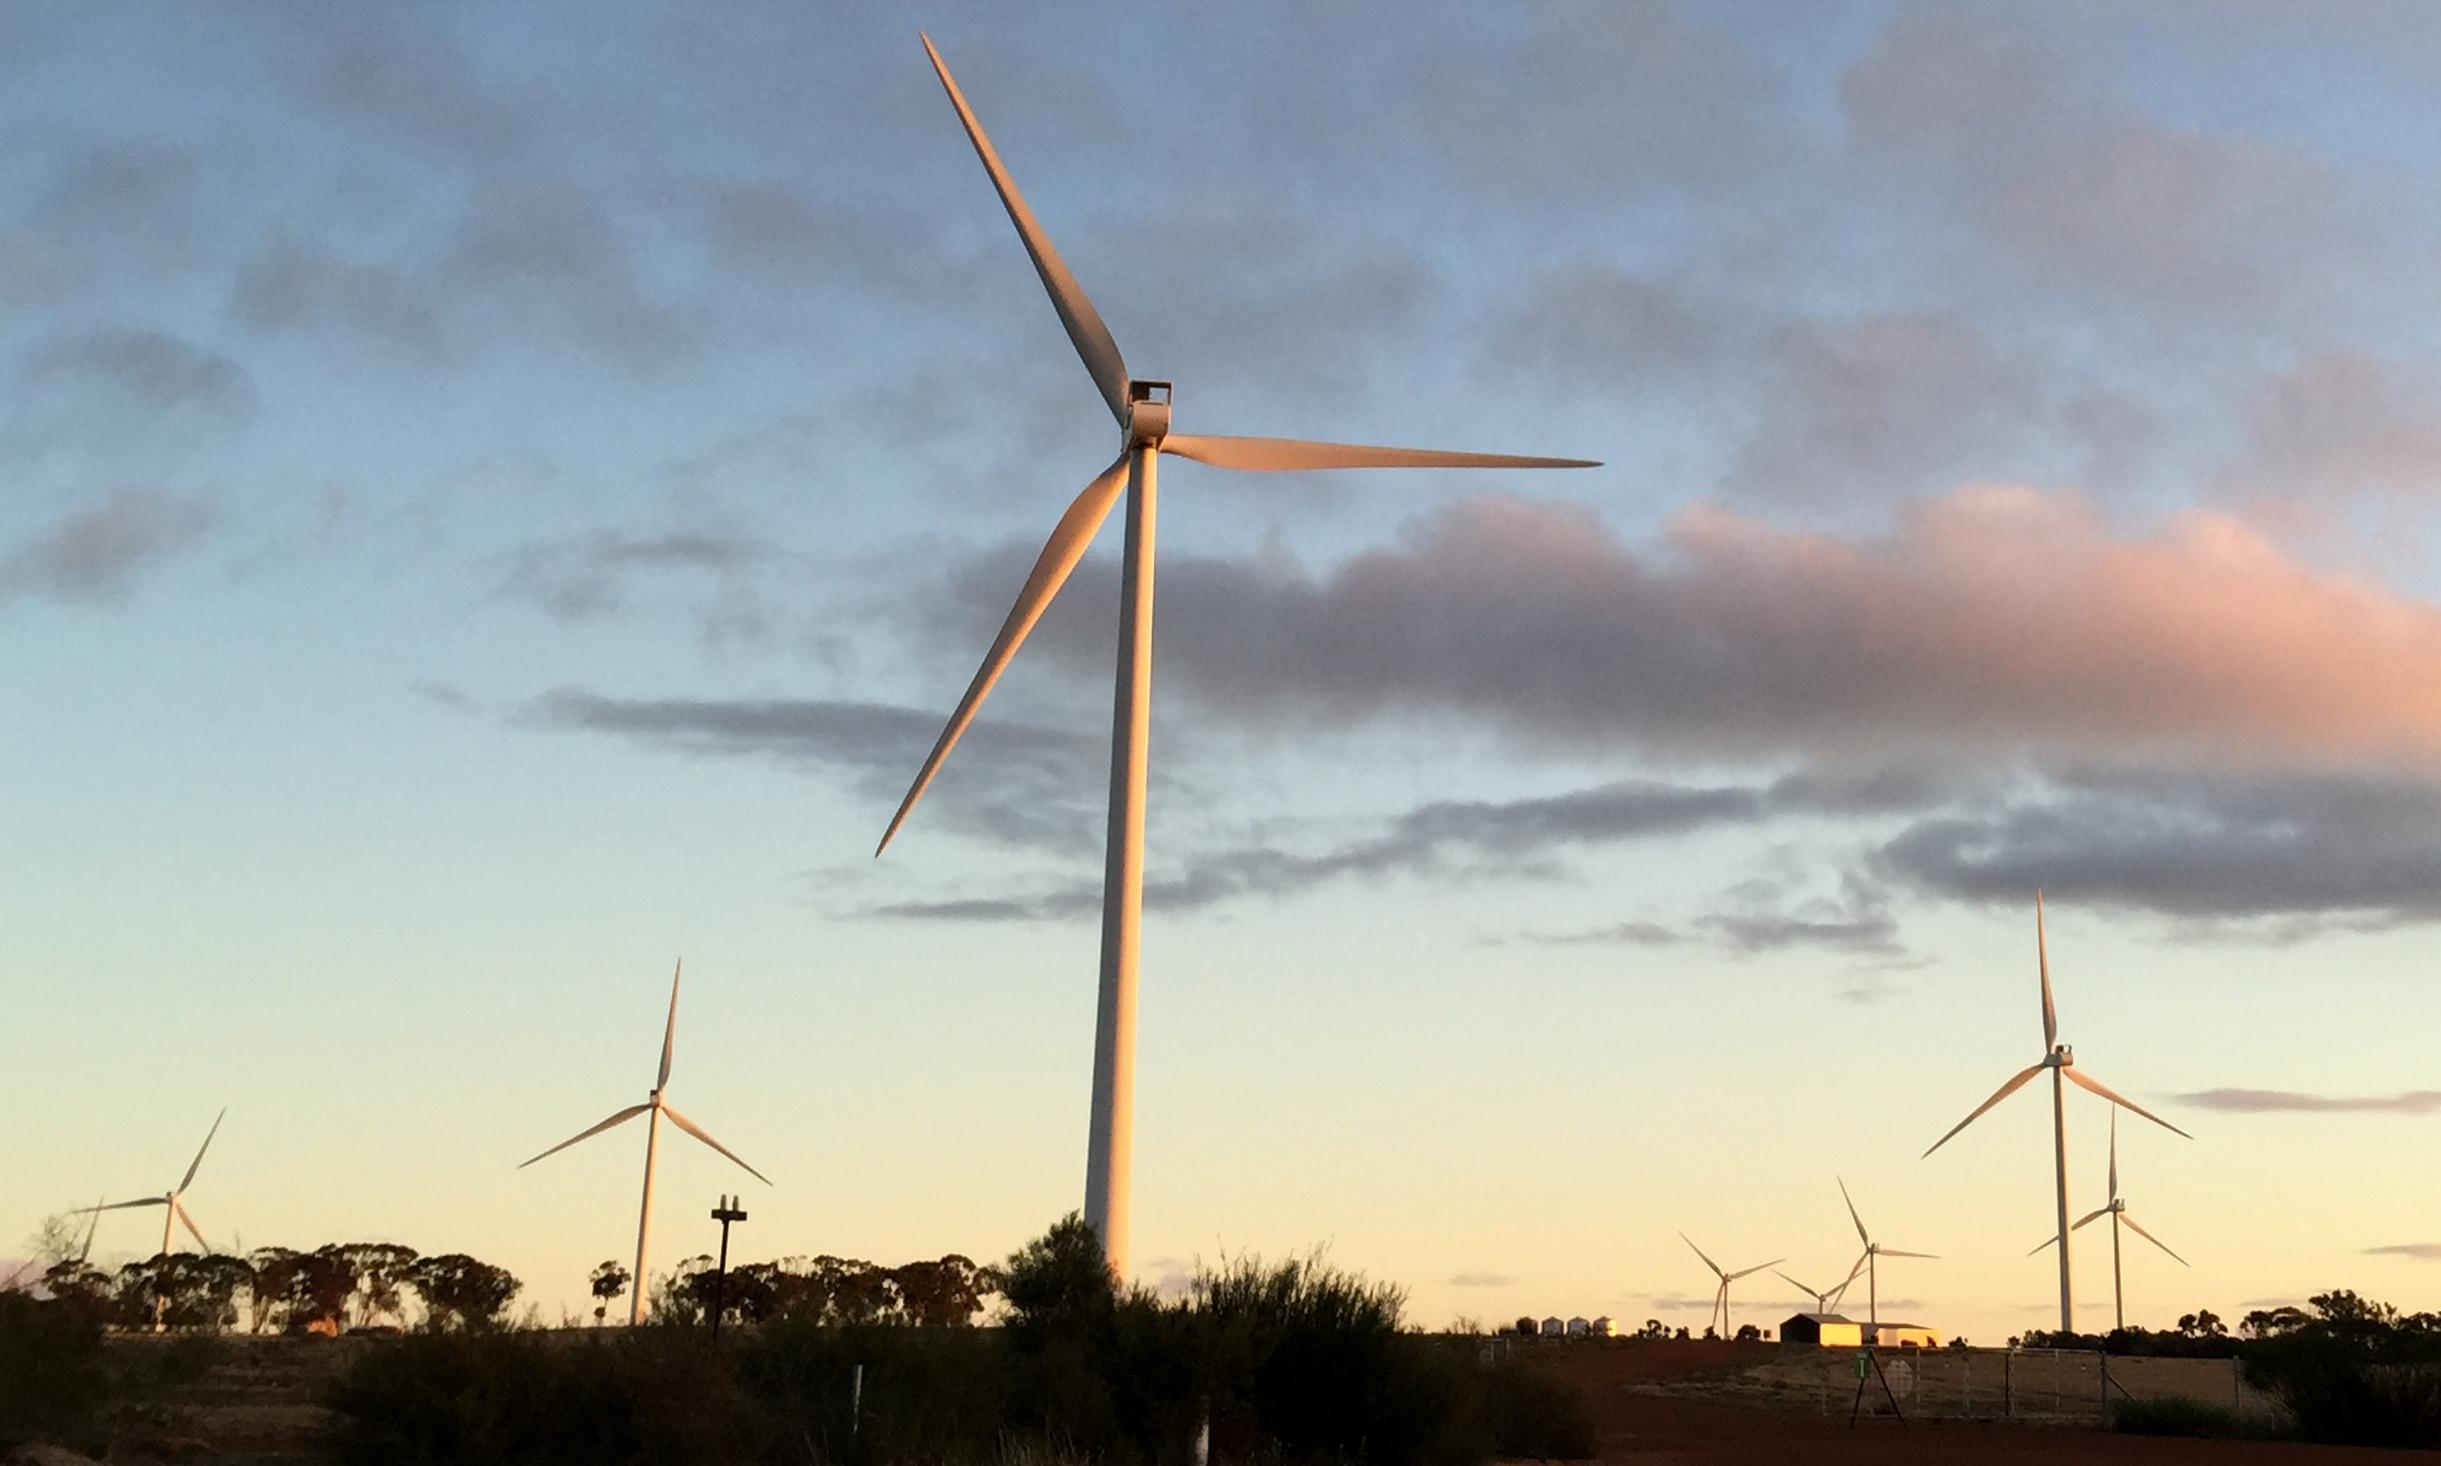 Australia could produce 200% of energy needs from renewables by 2050, researchers say